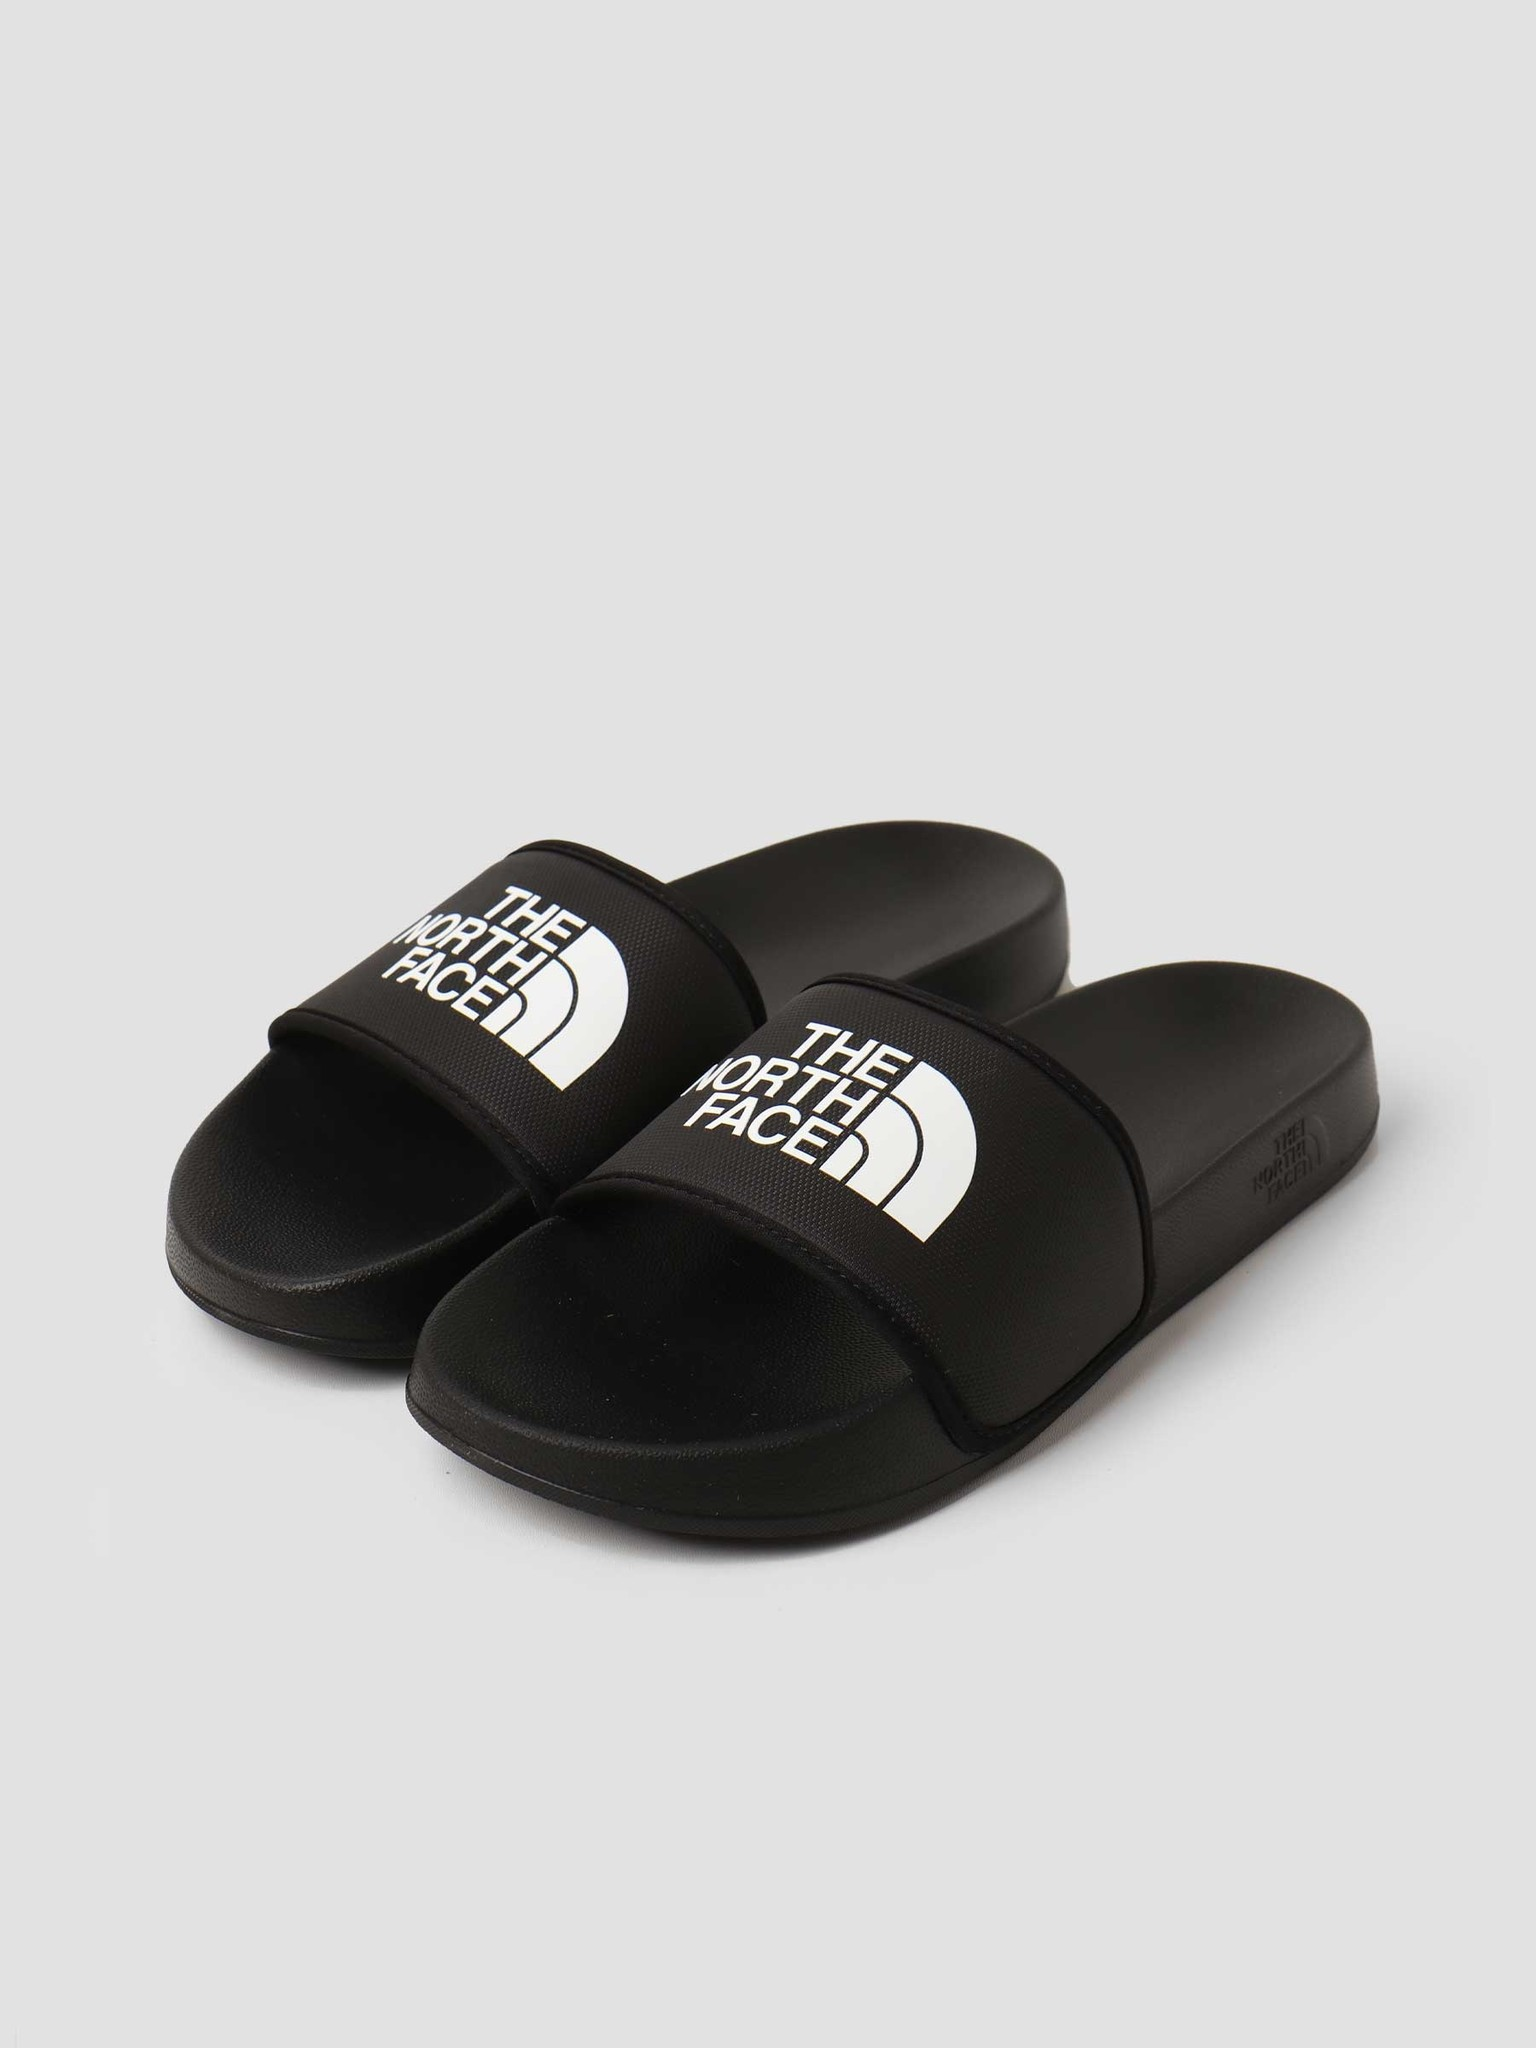 The North Face The North Face Base Camp Slide III Outdoor Sandal Black White NF0A4T2RKY4